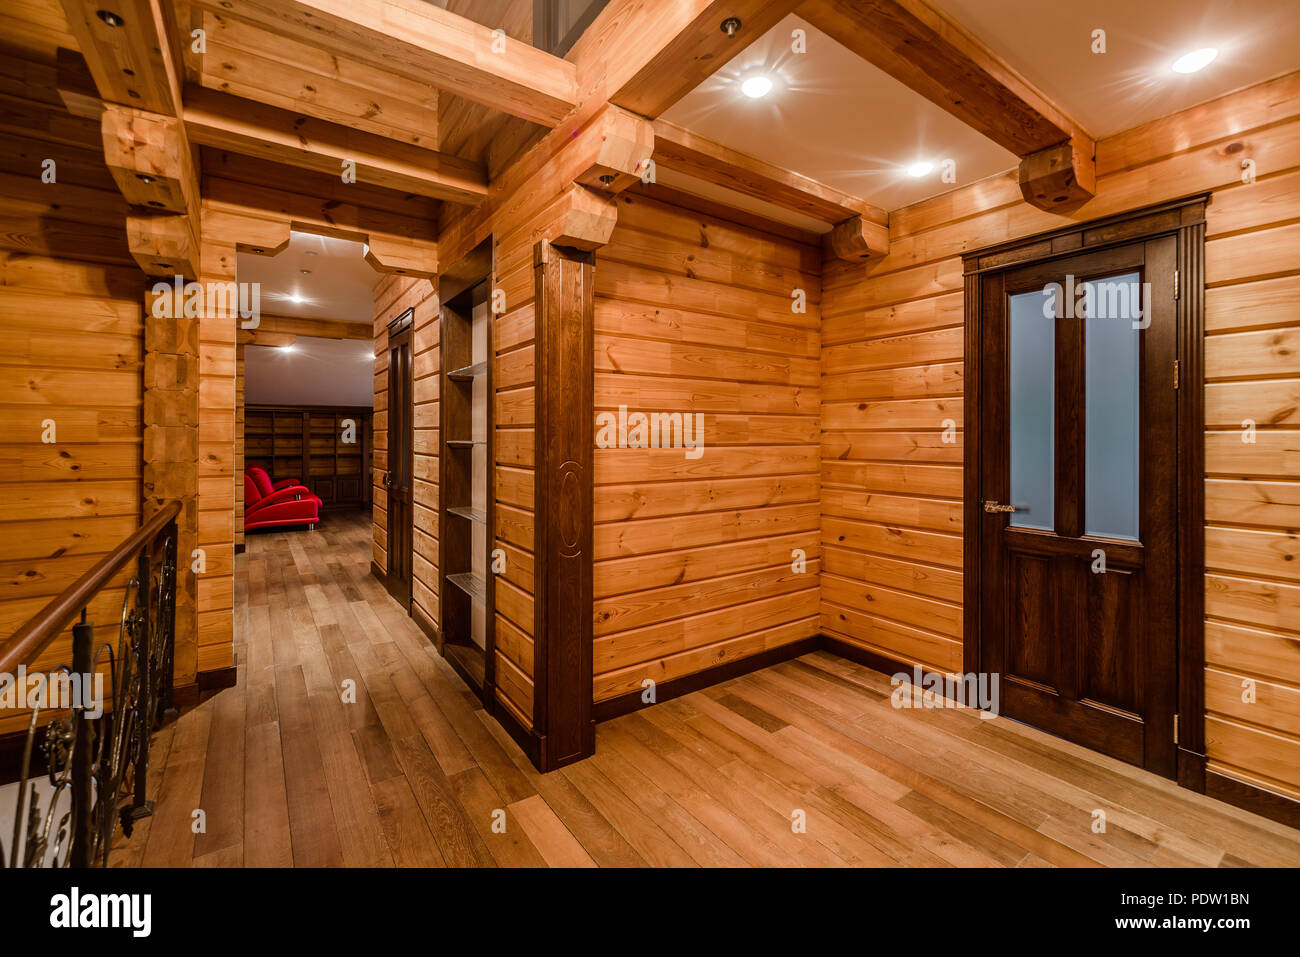 Inside of log cabin - Stock Image